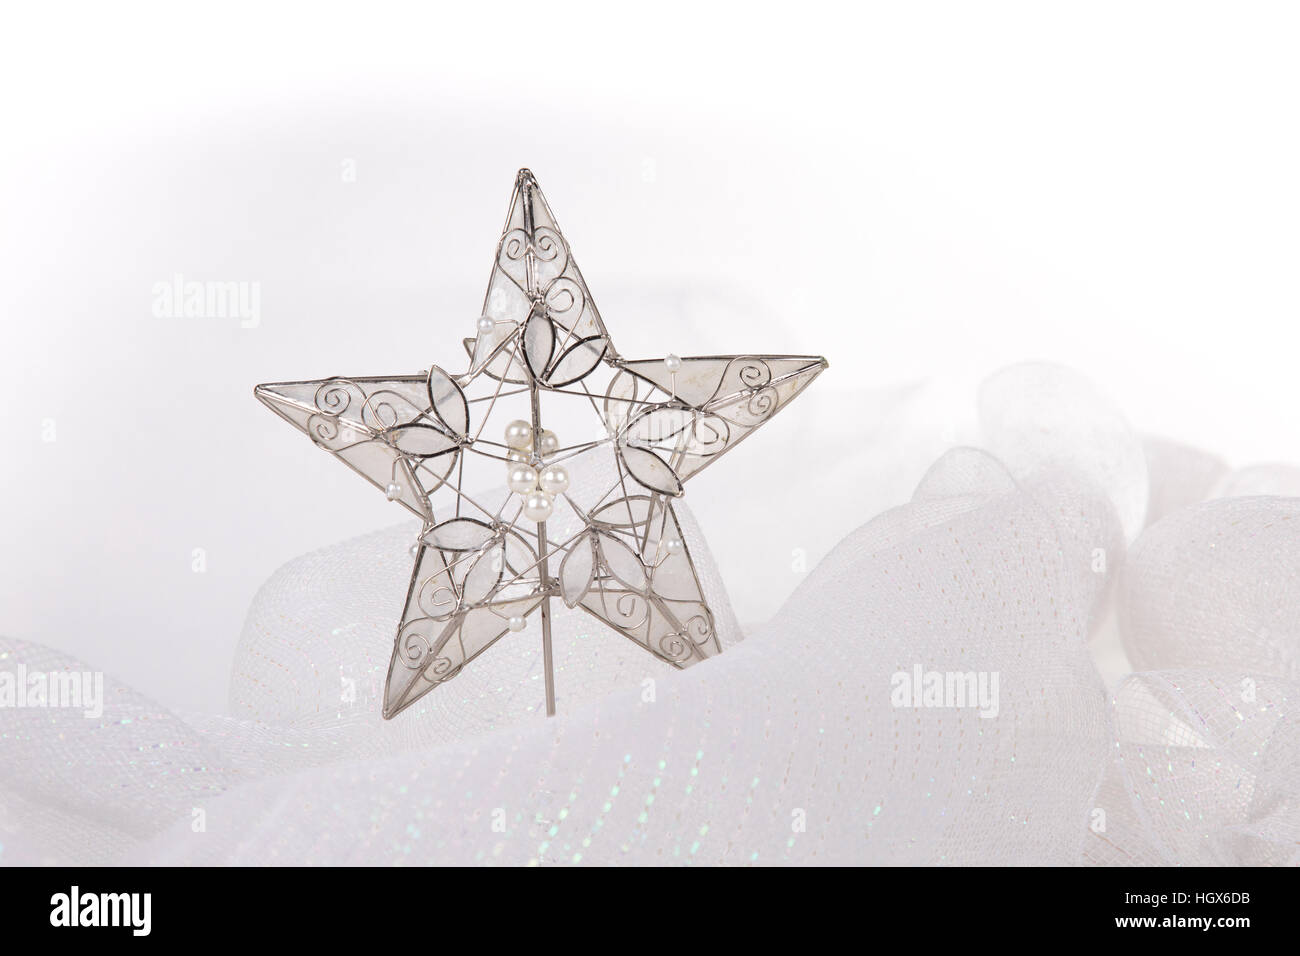 Star Ornament in white snowy cloth resembling snow.display - Stock Image